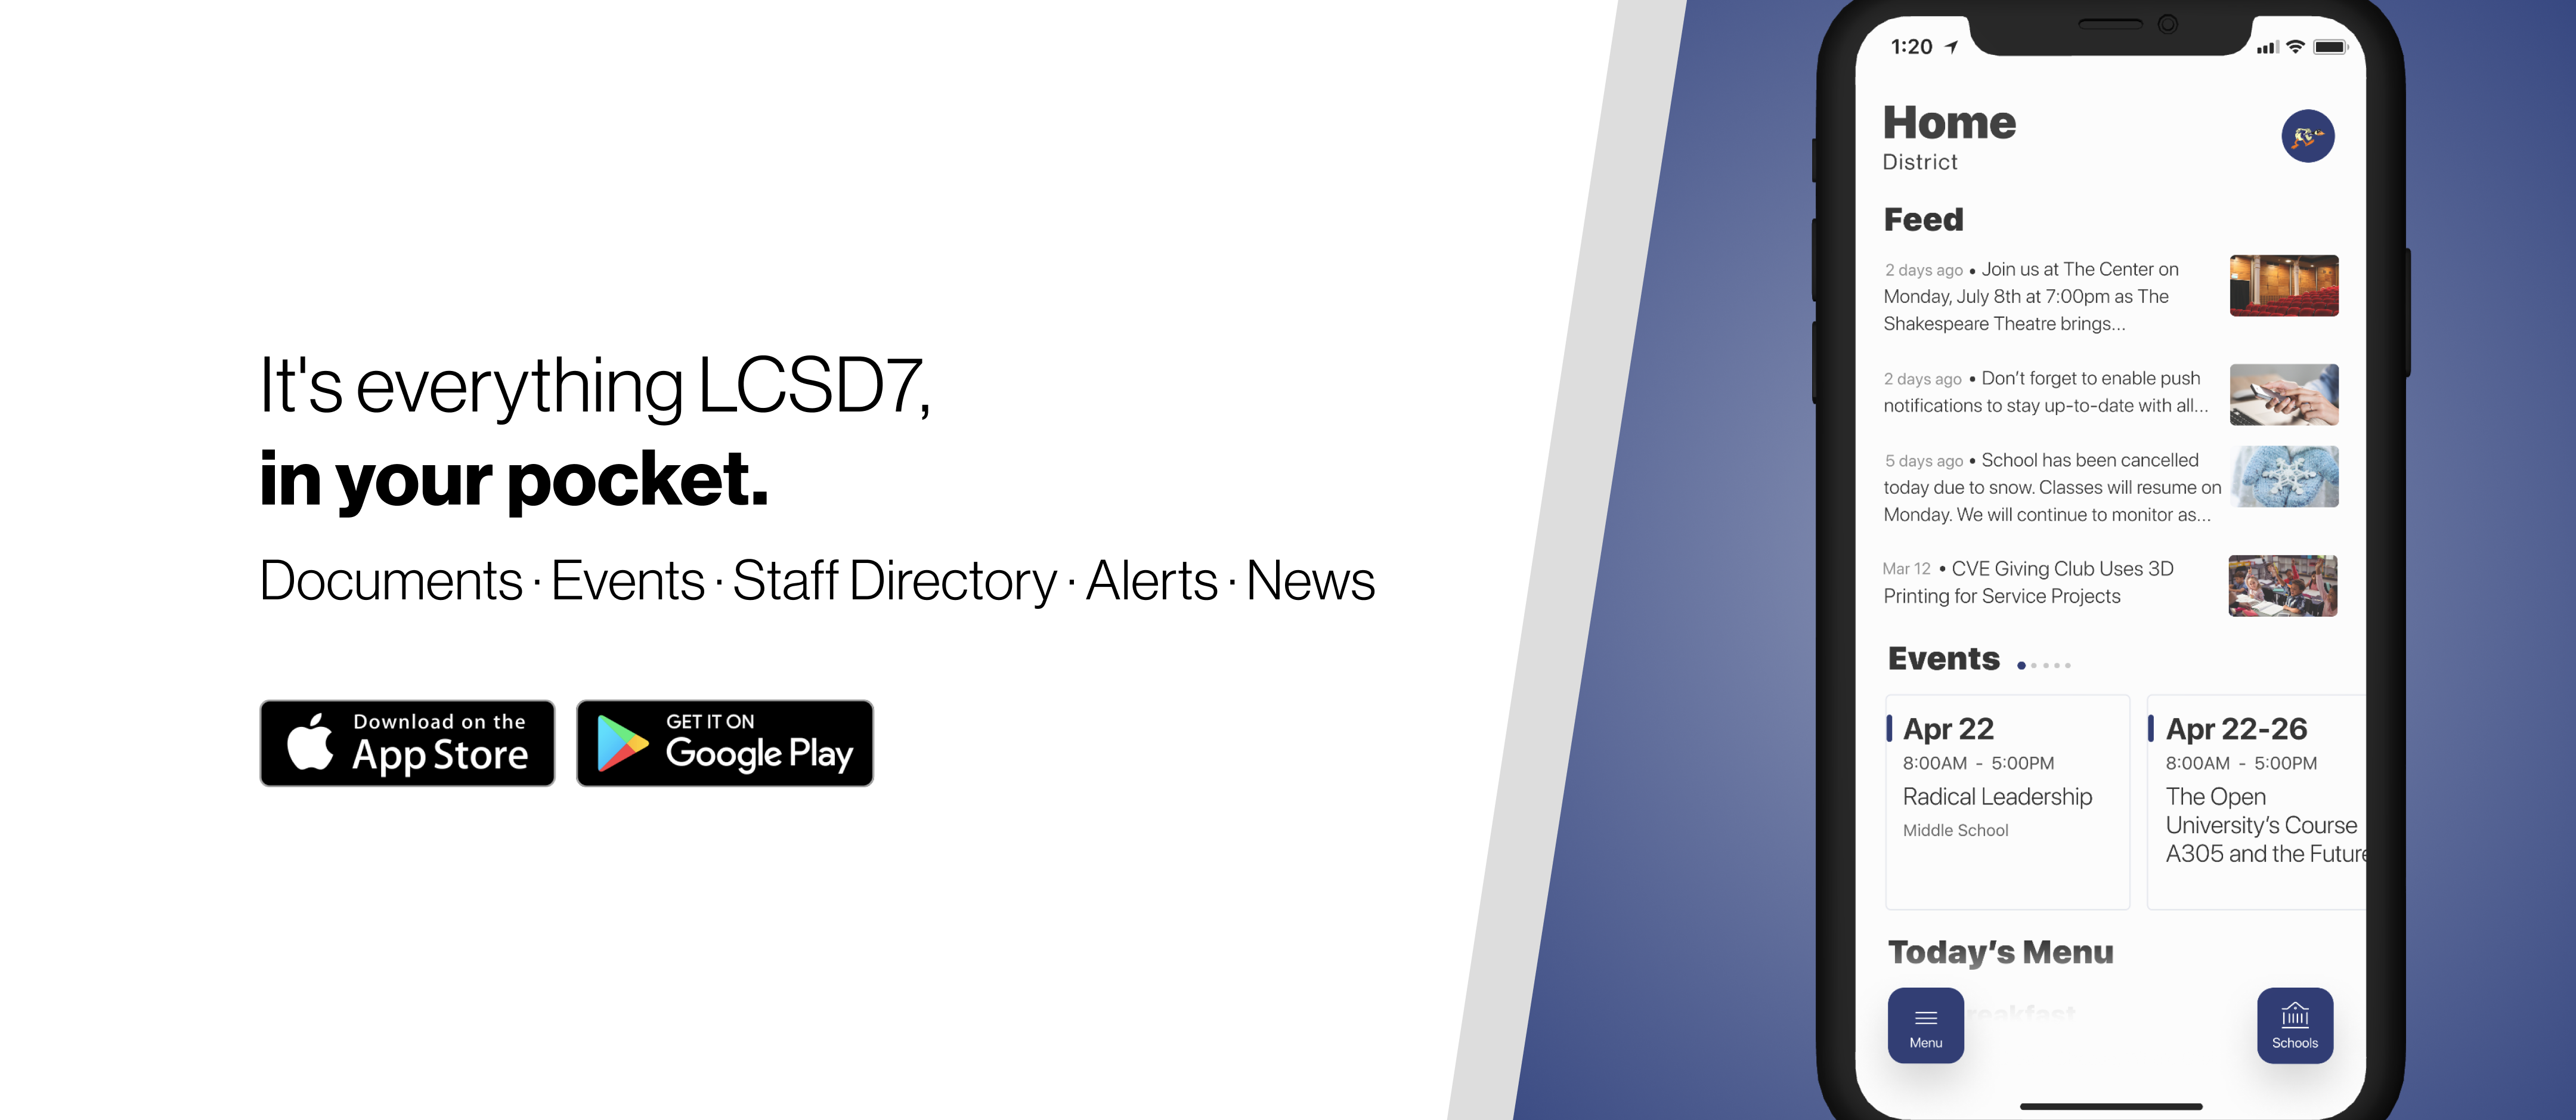 Its everything LCSD 7 in your pocket